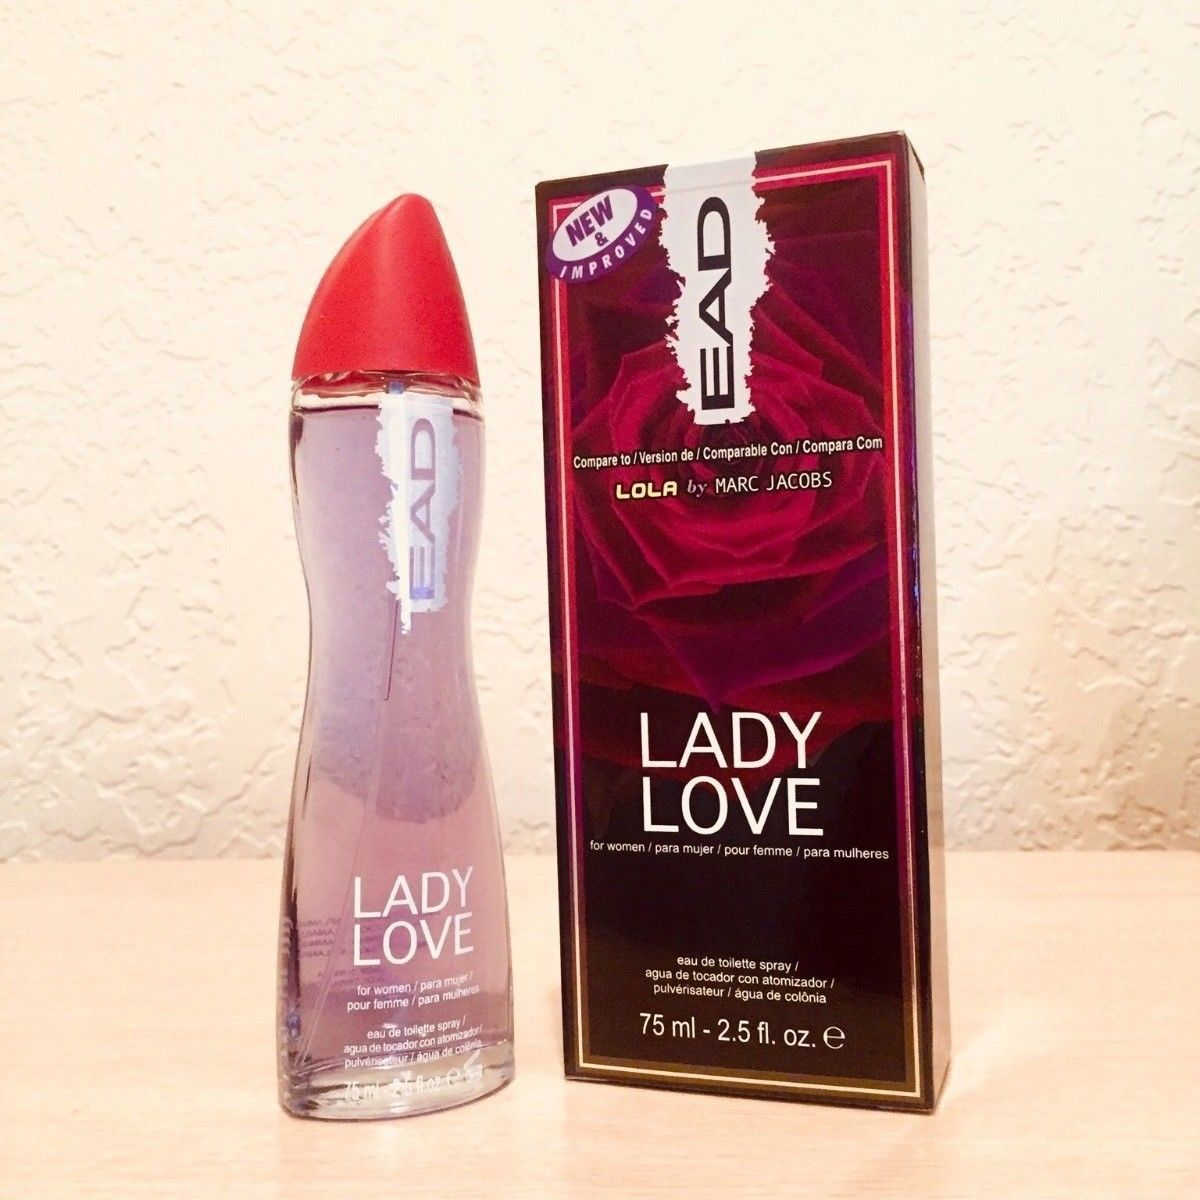 091723d63817e LADY LOVE WOMENS PERFUME BY EAD EAU DE TOILETTE 2.5FL OZ 75mLe (BRAND NEW)